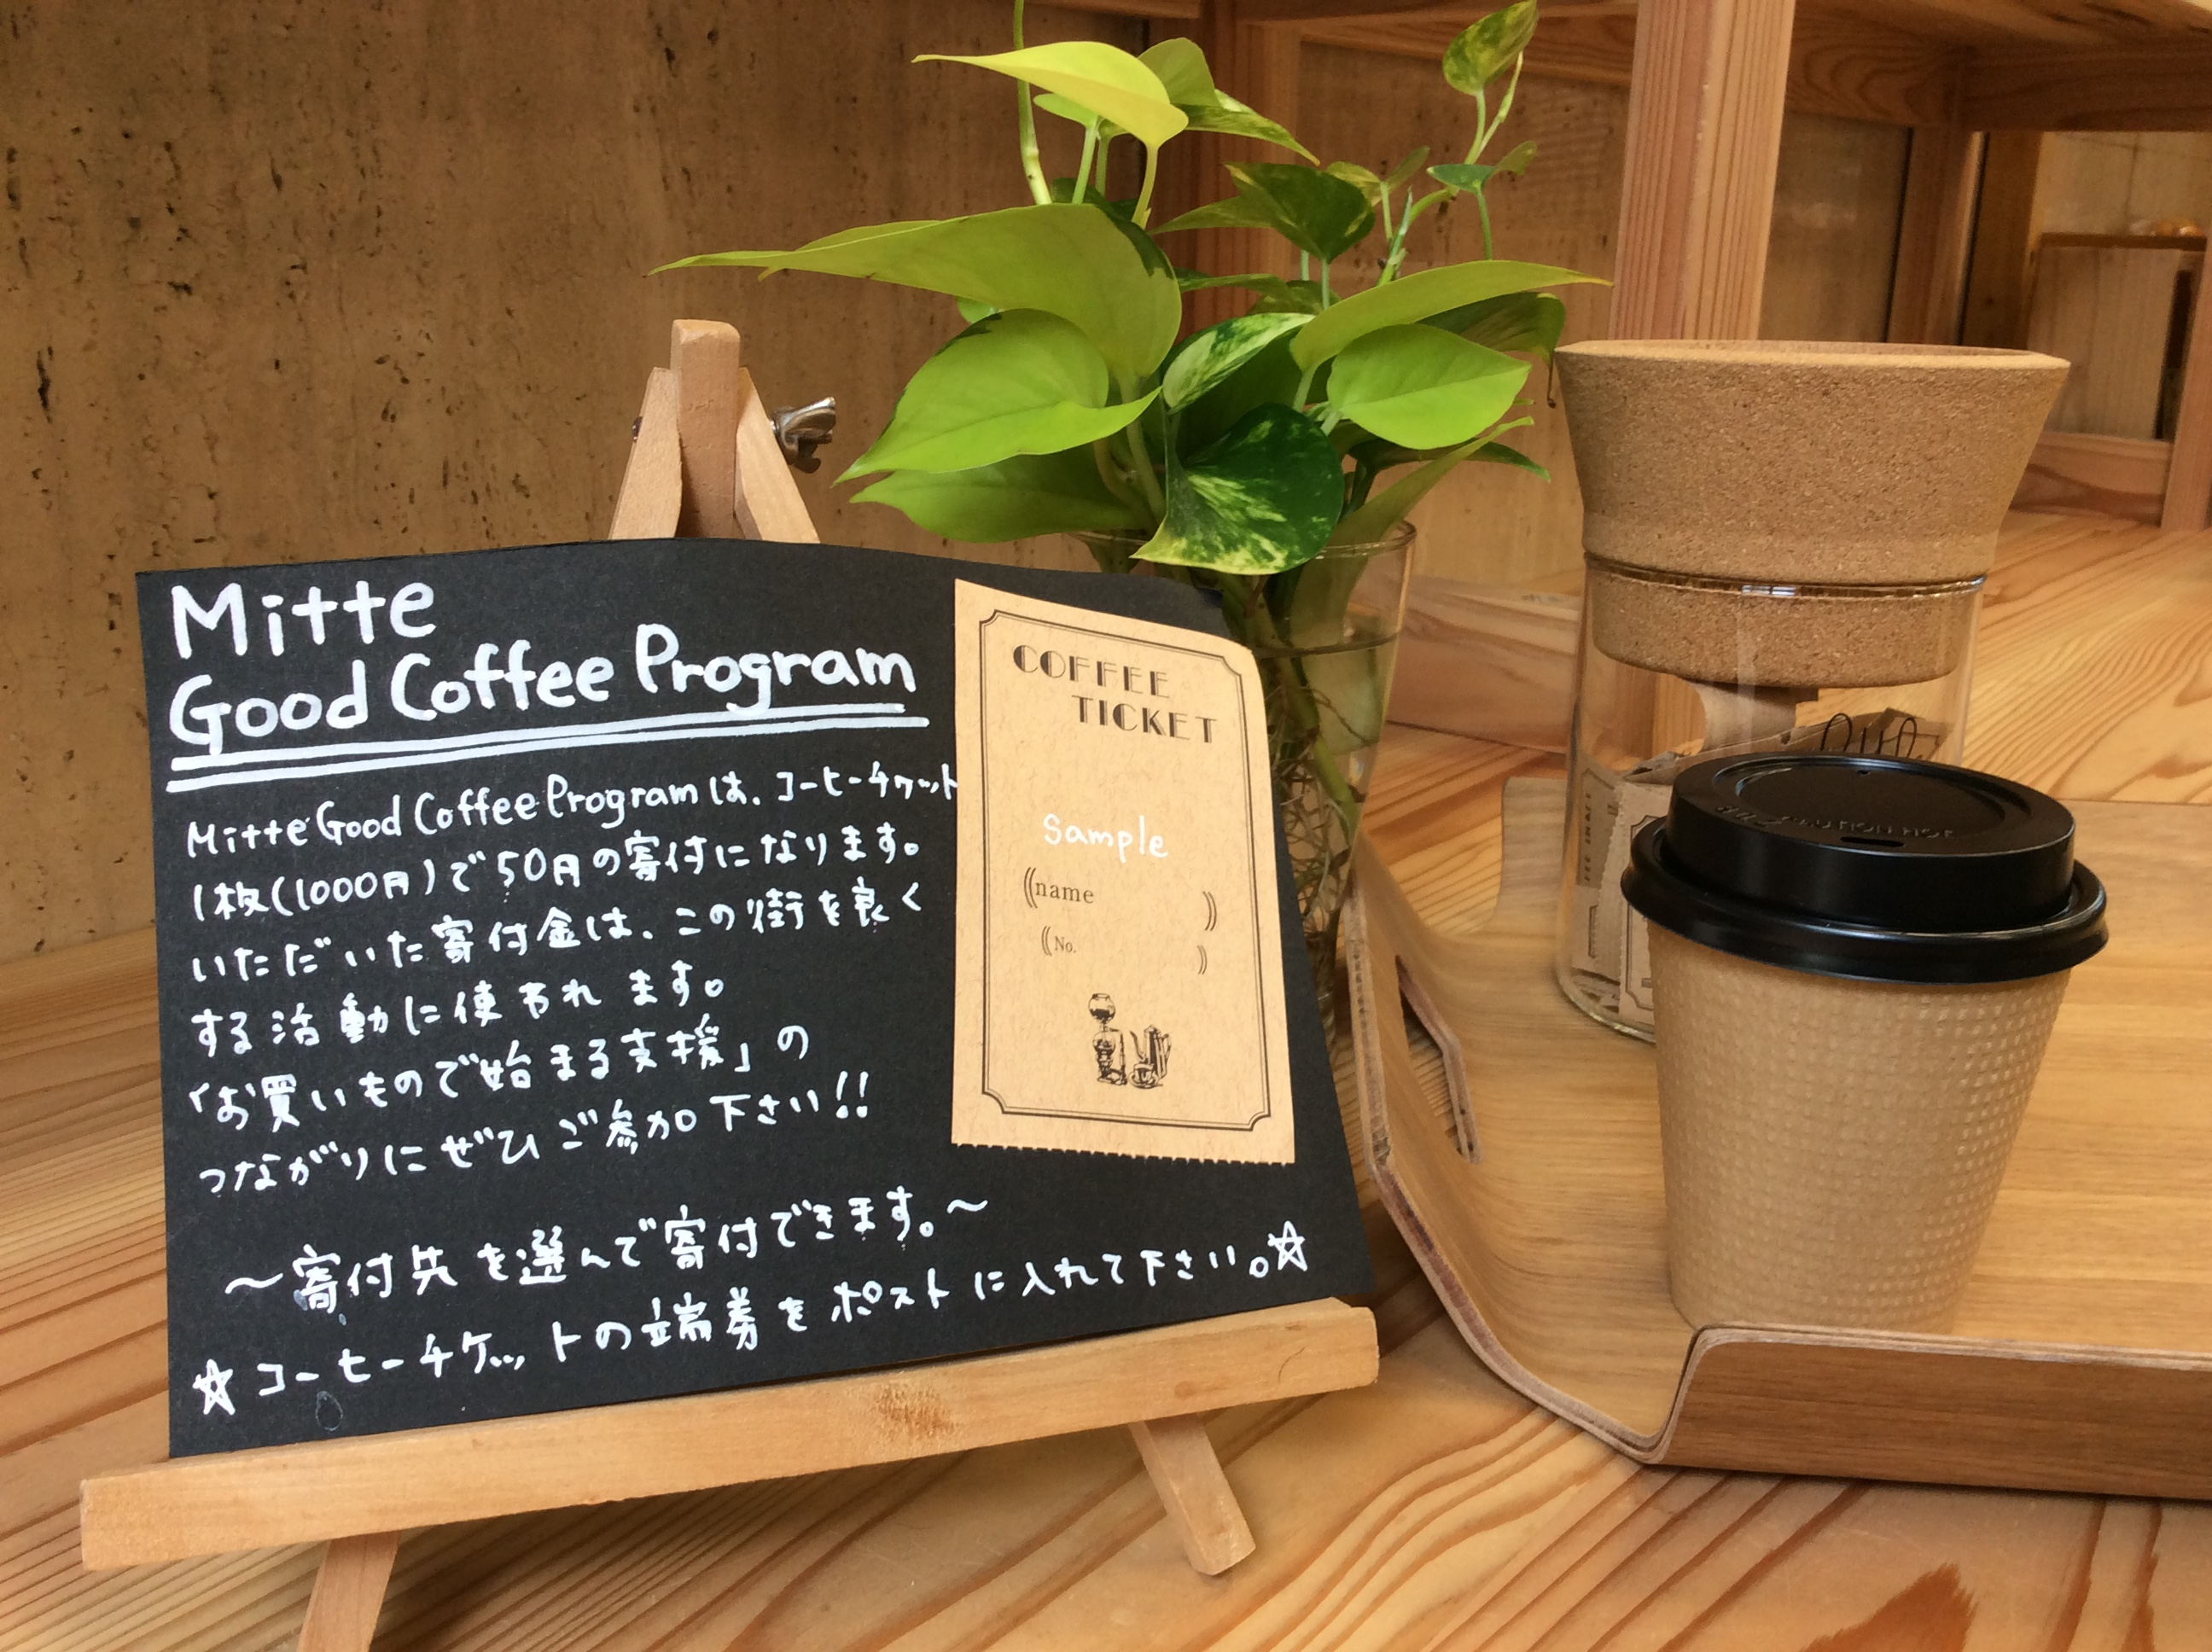 Mitte Good Coffee Program 10月のご報告